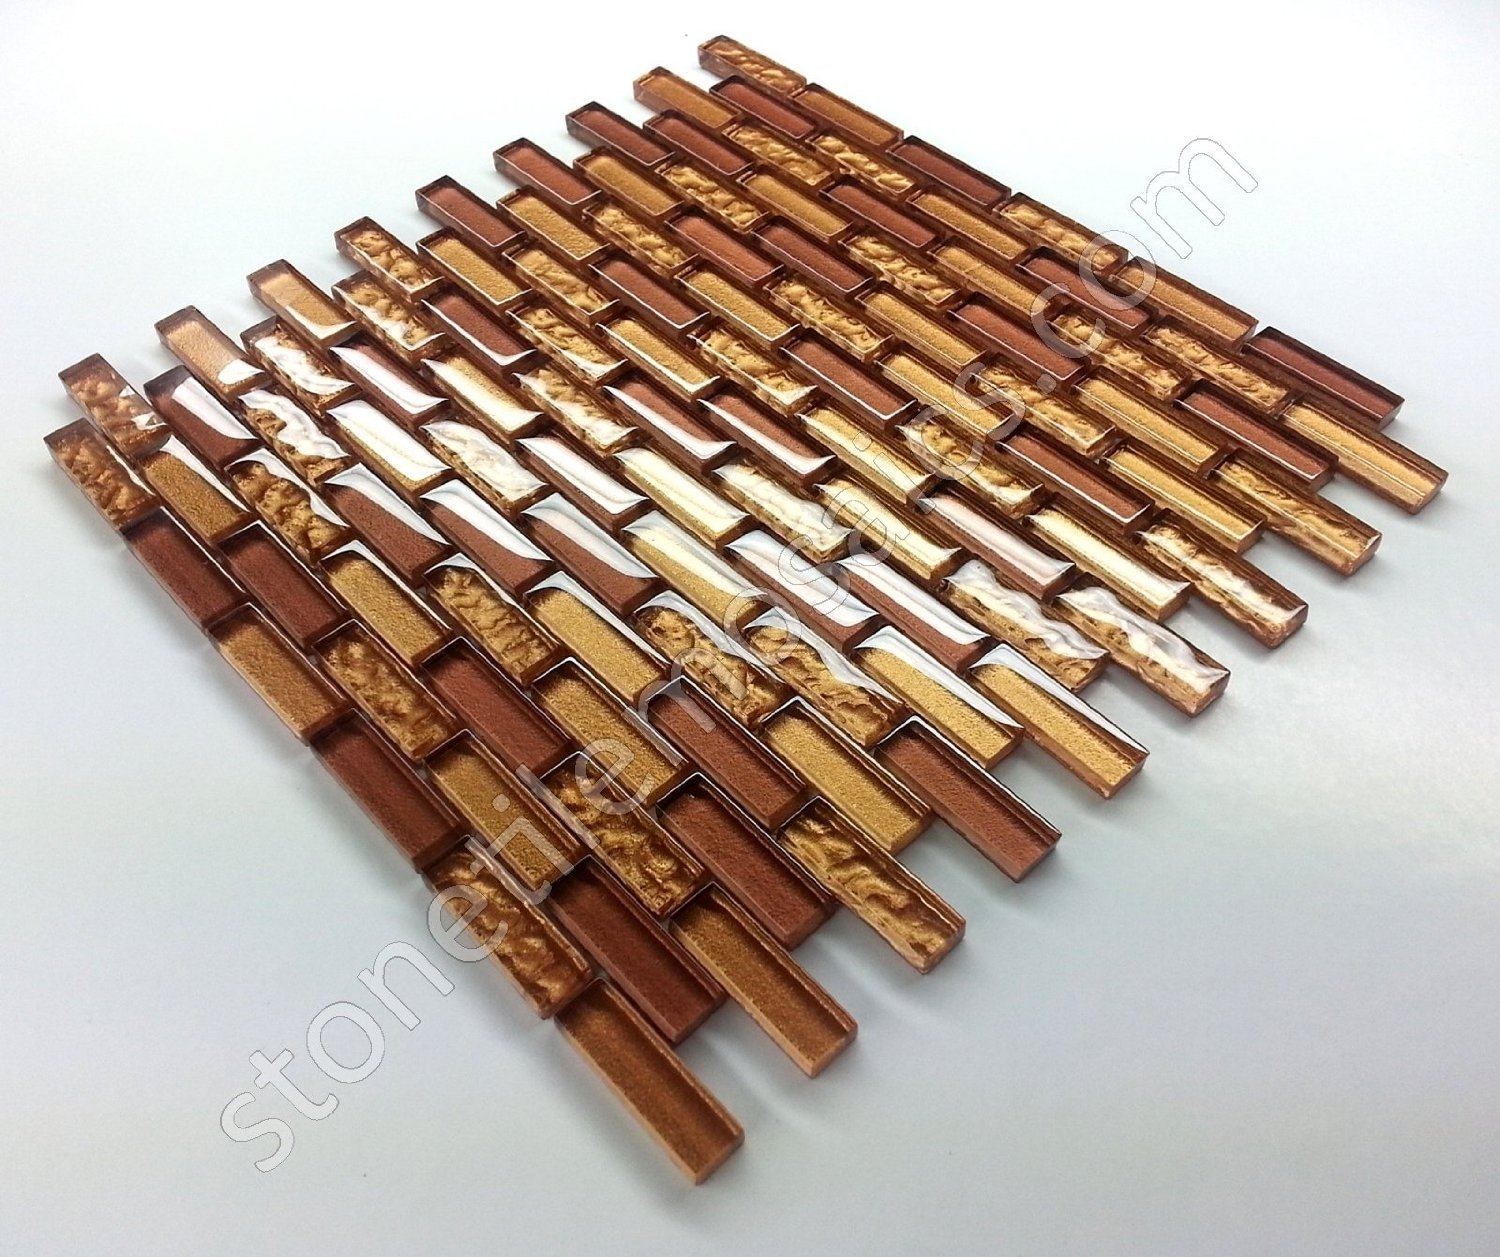 Cheap Copper Glass Tile Find Copper Glass Tile Deals On Line At